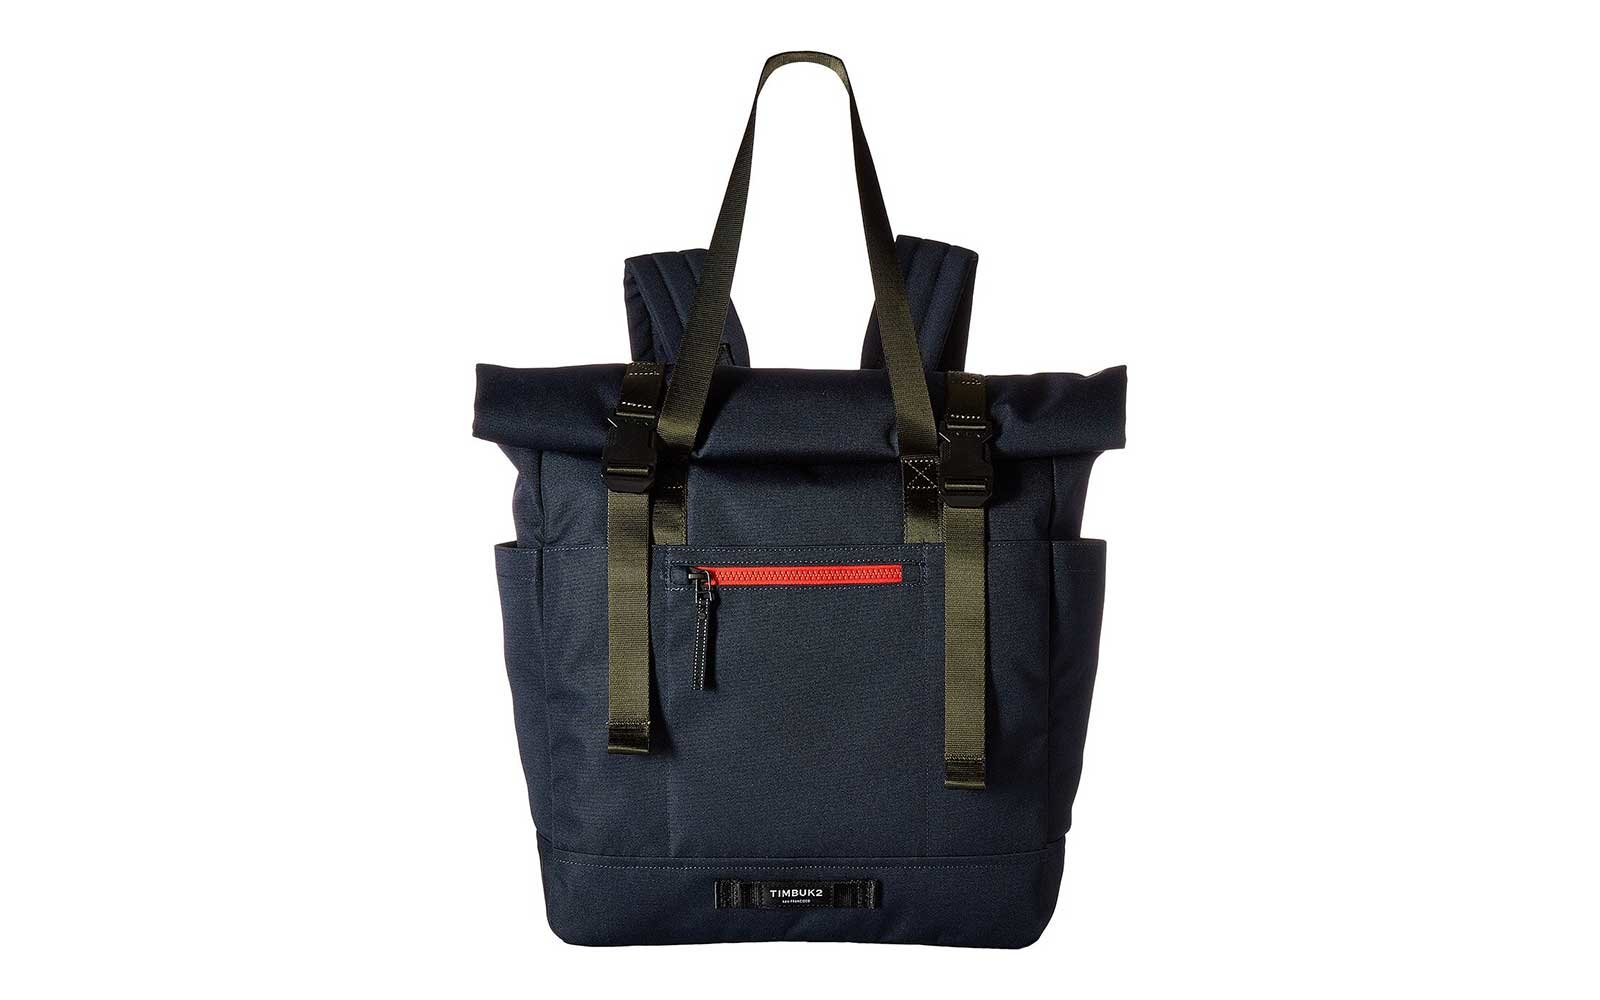 Timbuk2 Forge Tote Backpack in black